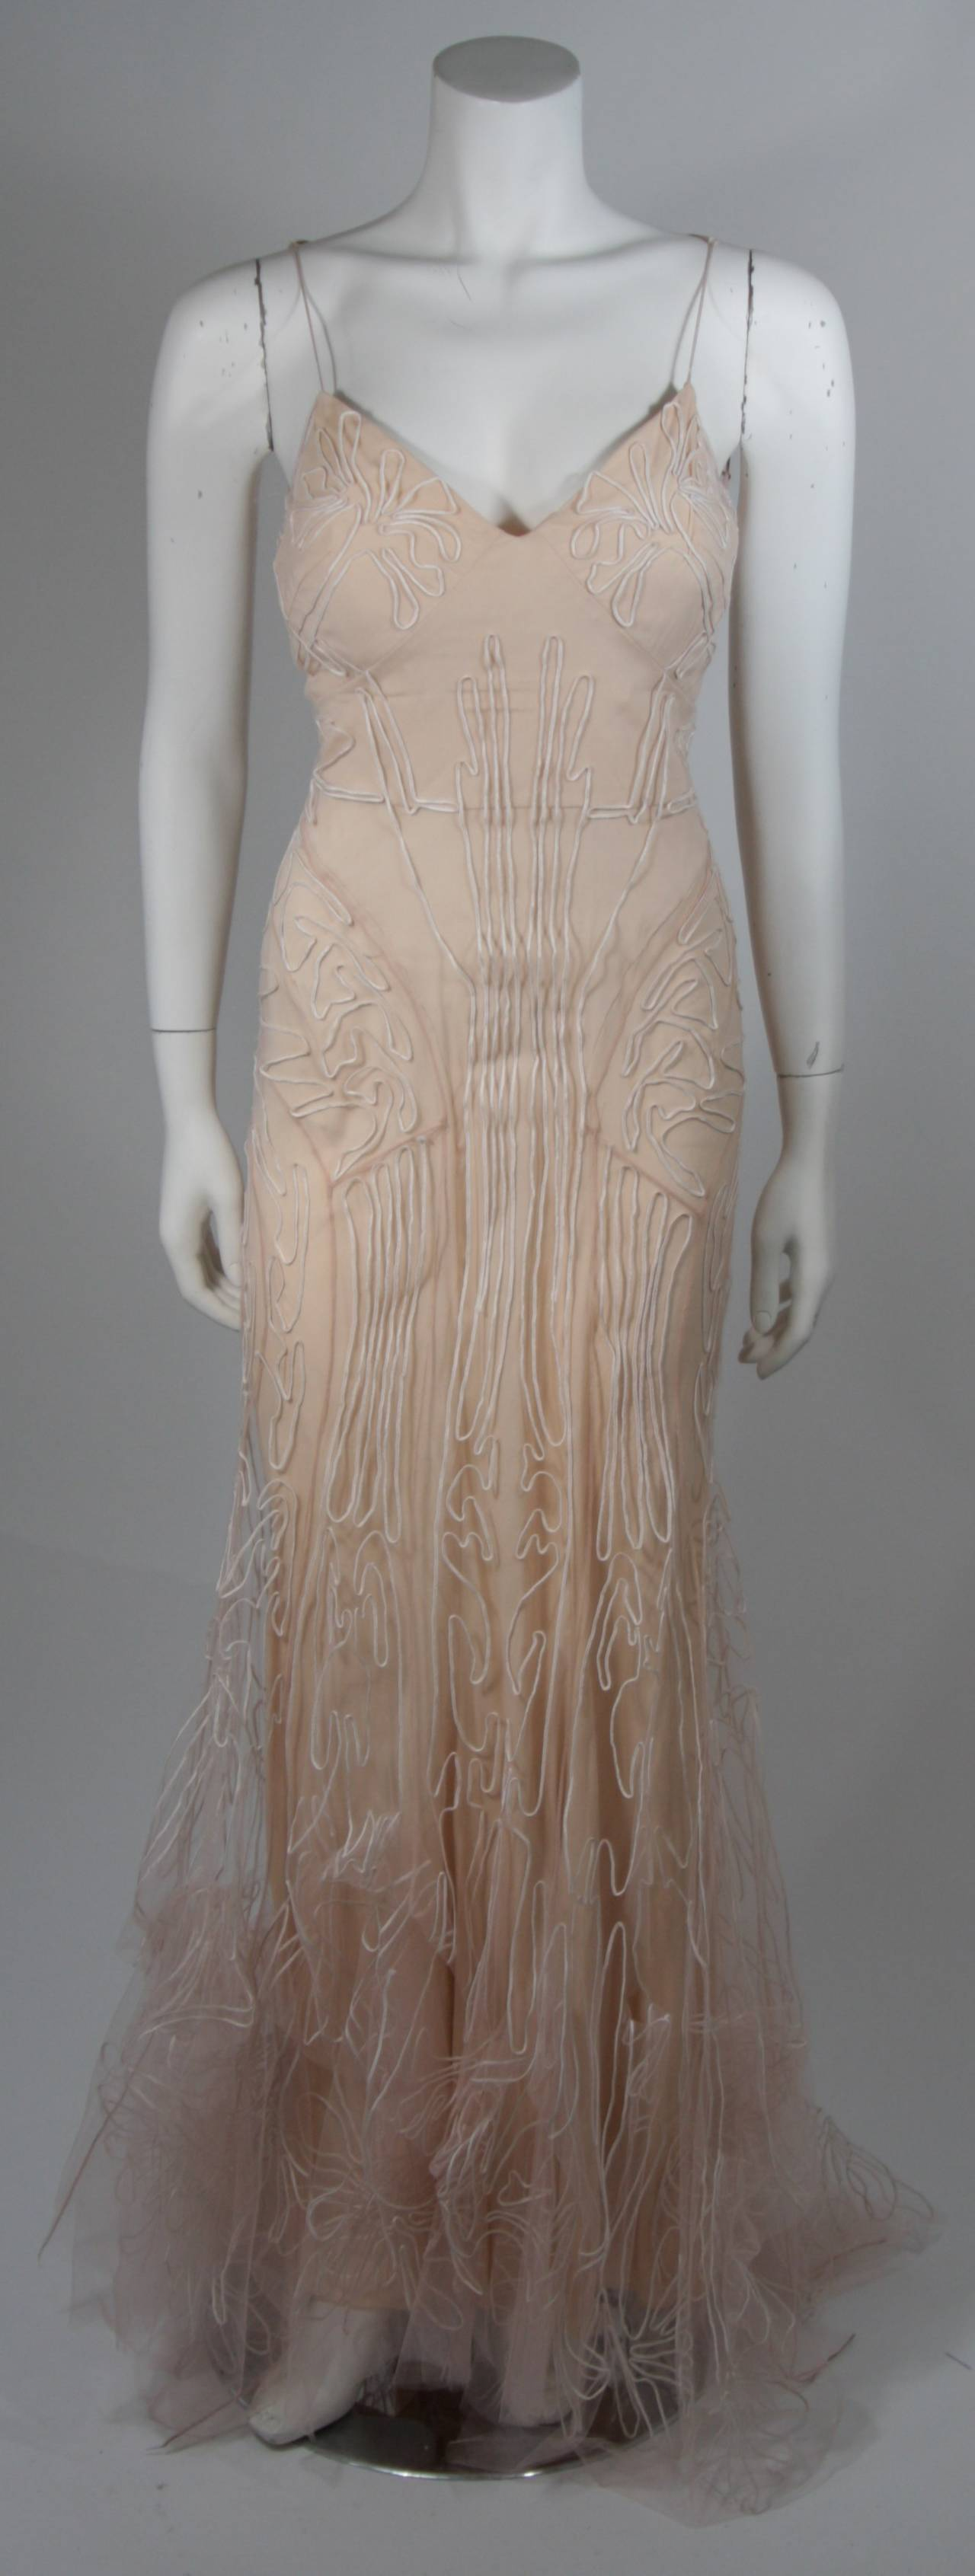 Zac Posen Embroidered Blush Silk Mesh Wedding Gown with Veil Size Small 2